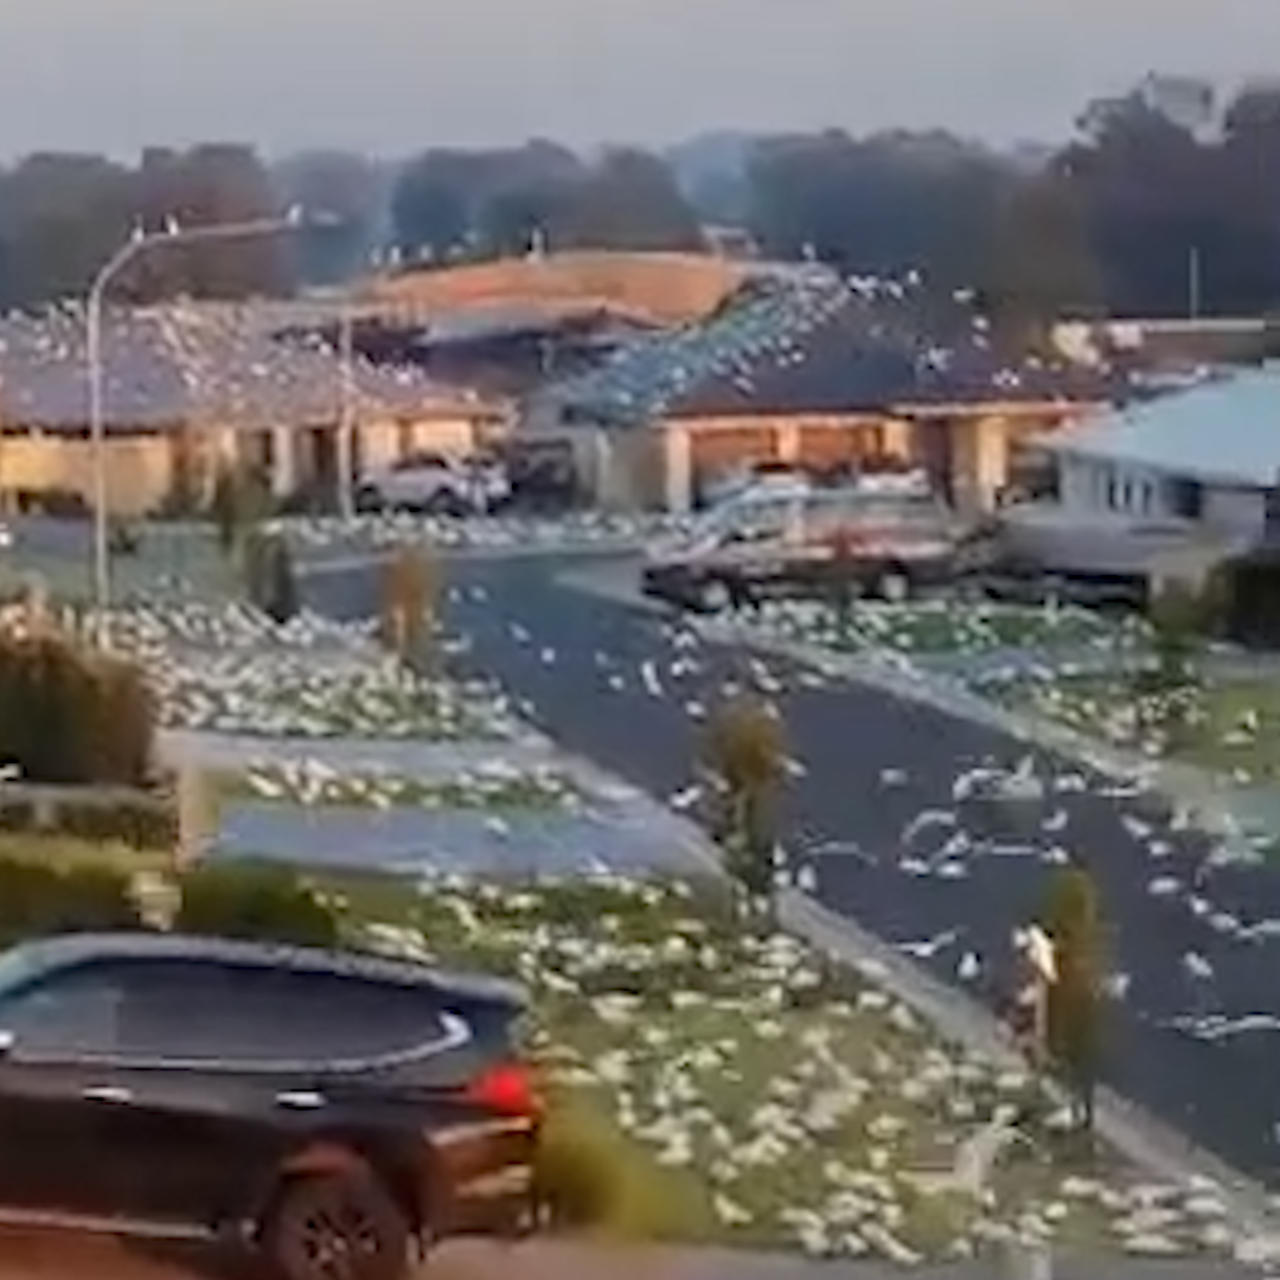 Thousands of birds invaded this Australian suburb, and it looks like something out of a horror movie